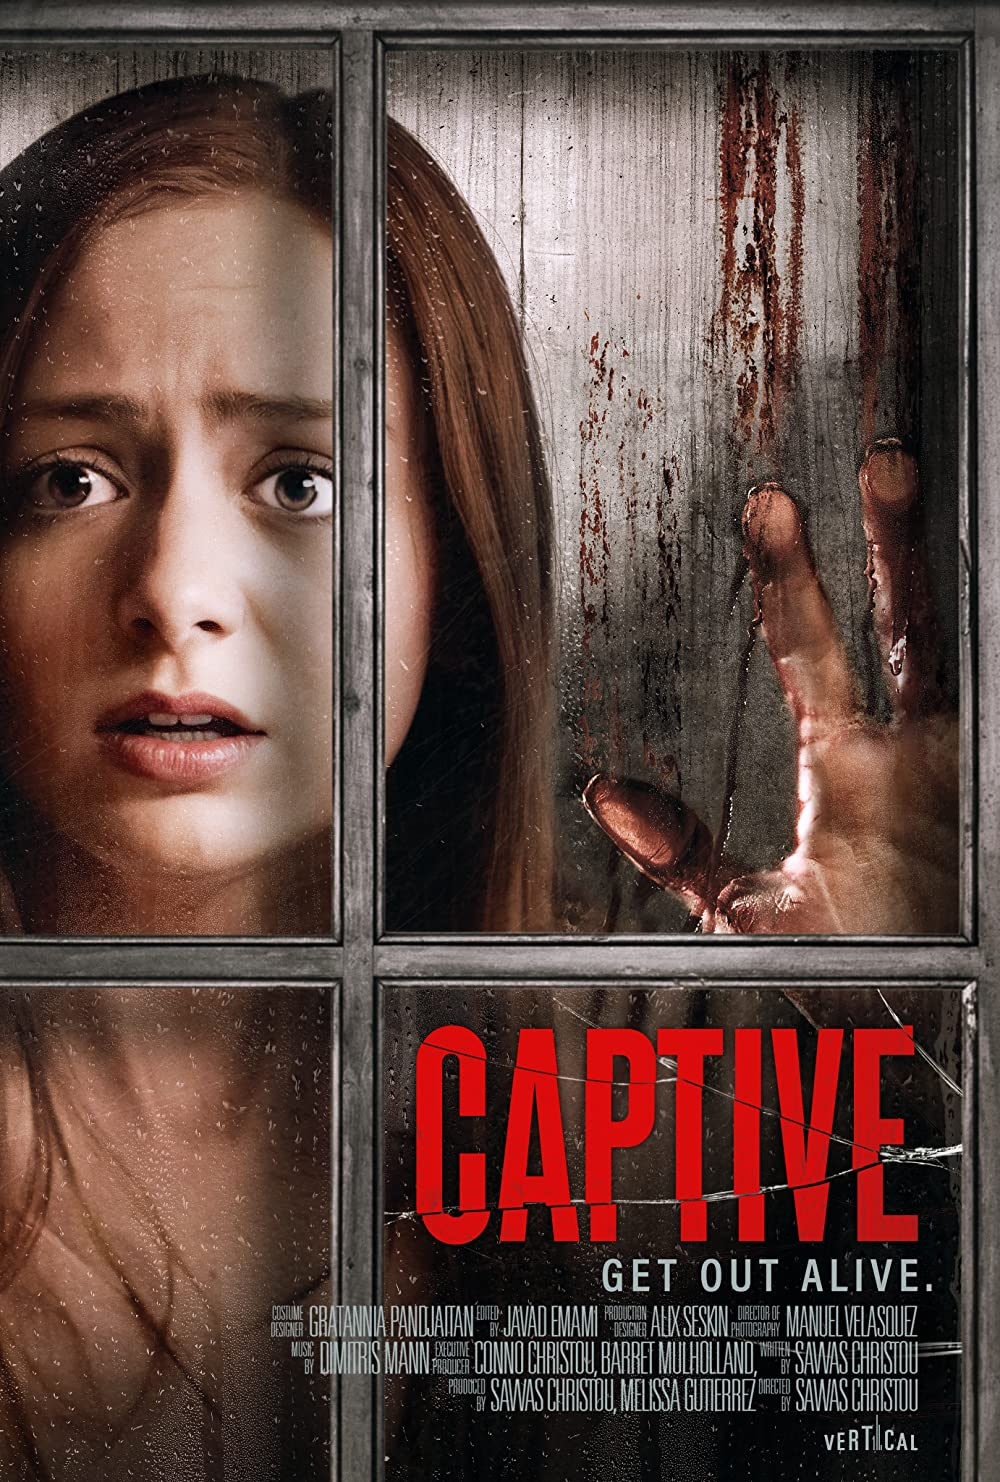 Captive 2020 English Full Movie 280MB HDRip Download